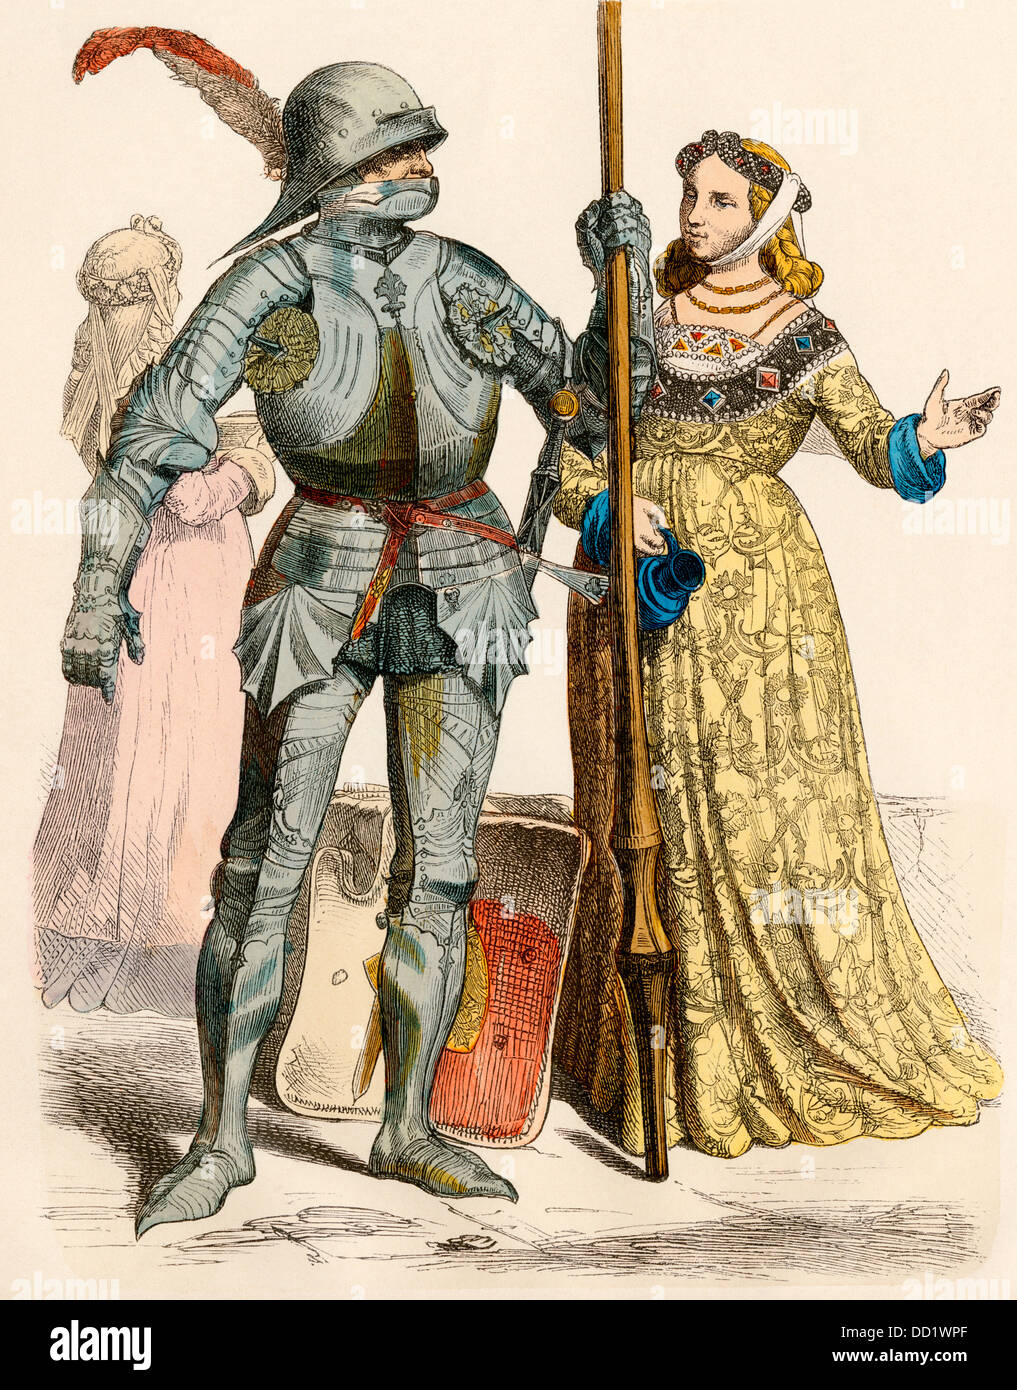 german knight in armor and a lady mid 1400s hand colored print